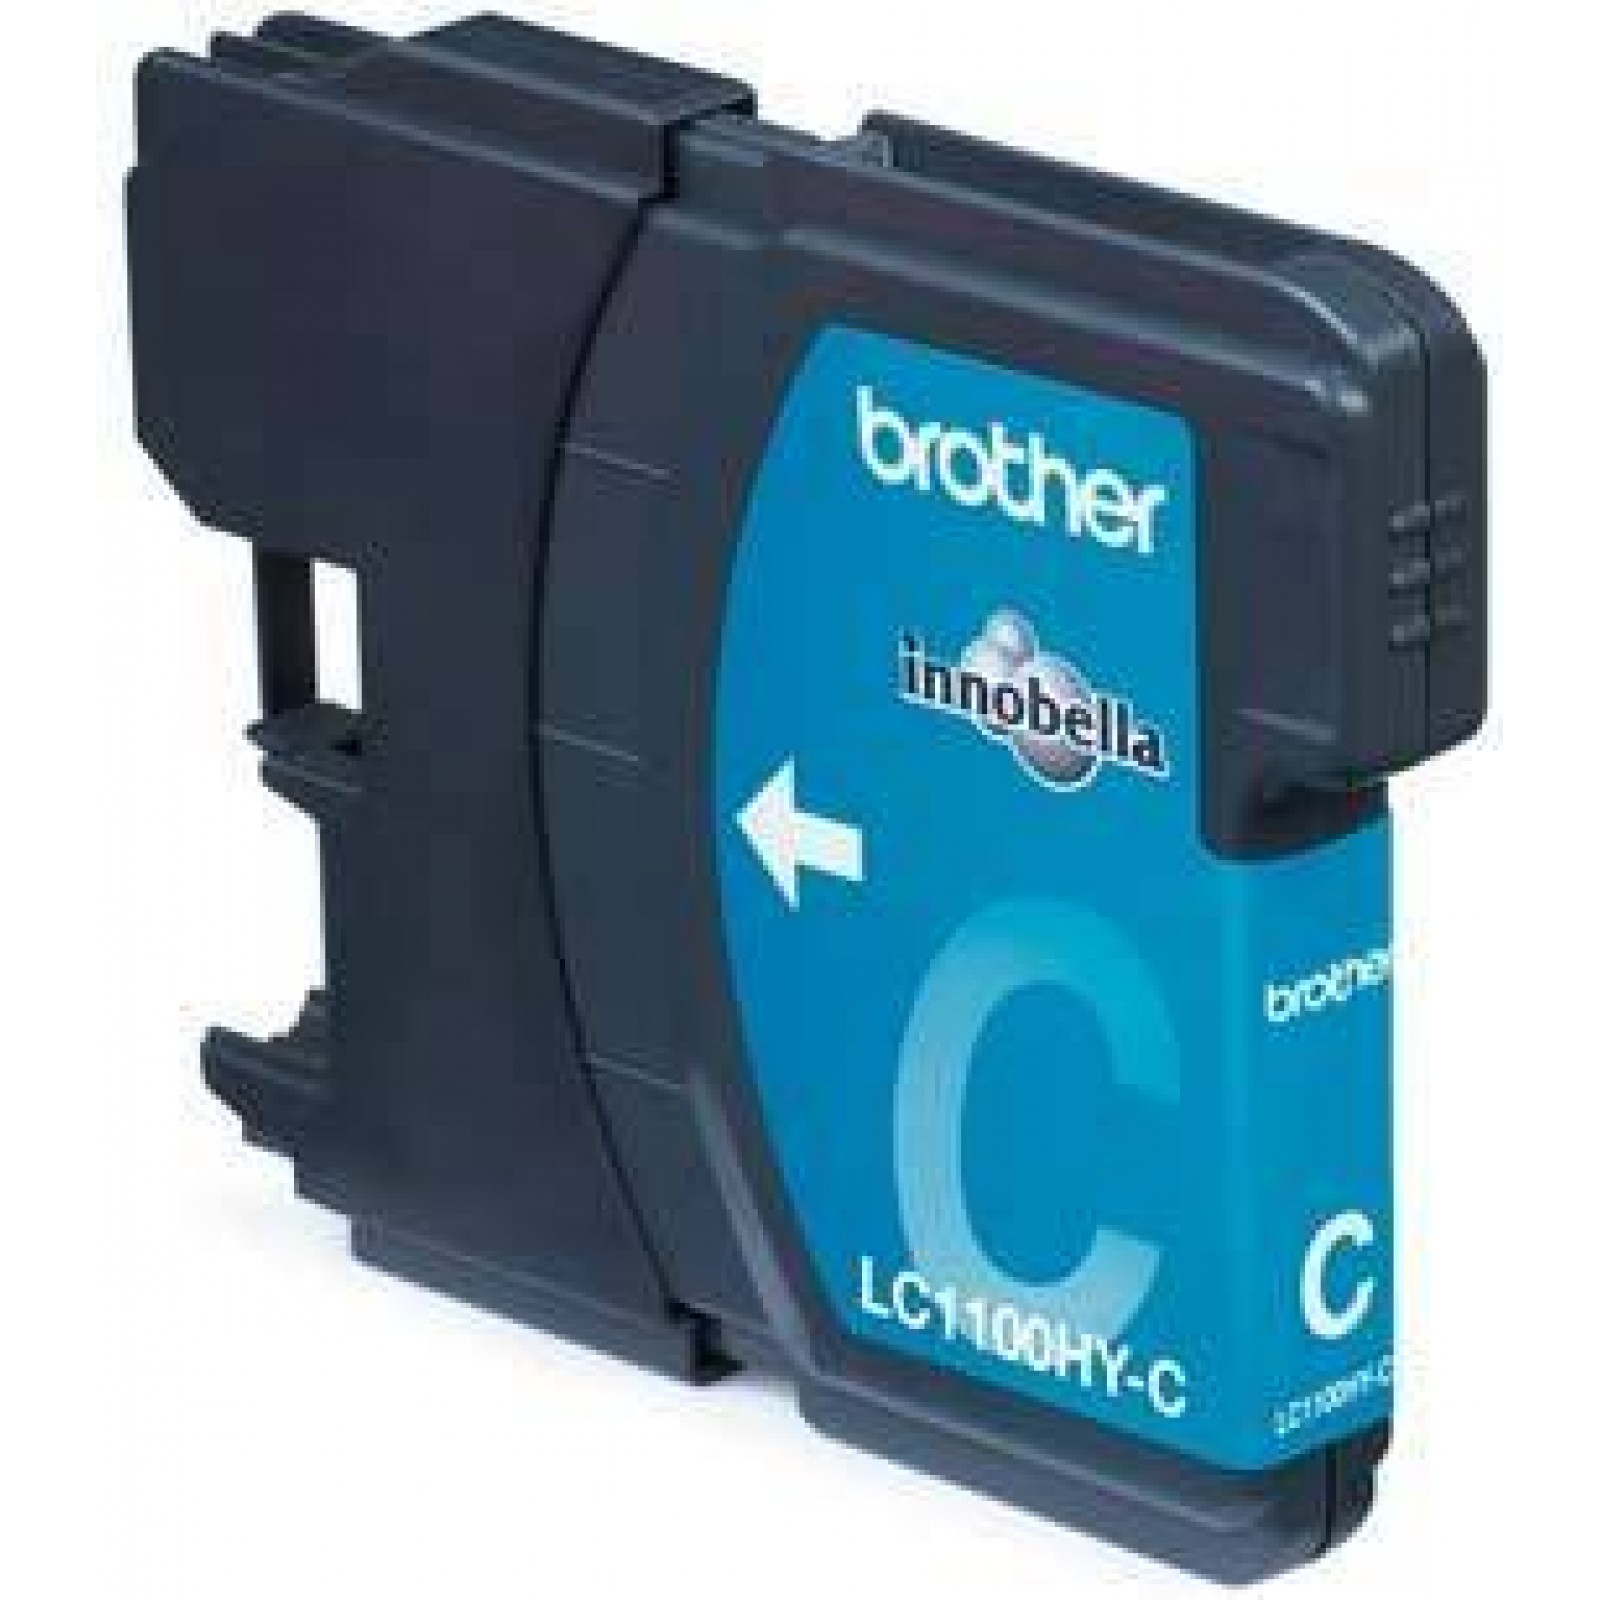 Brother LC-1100HYC Druckerpatrone cyan Jumbo